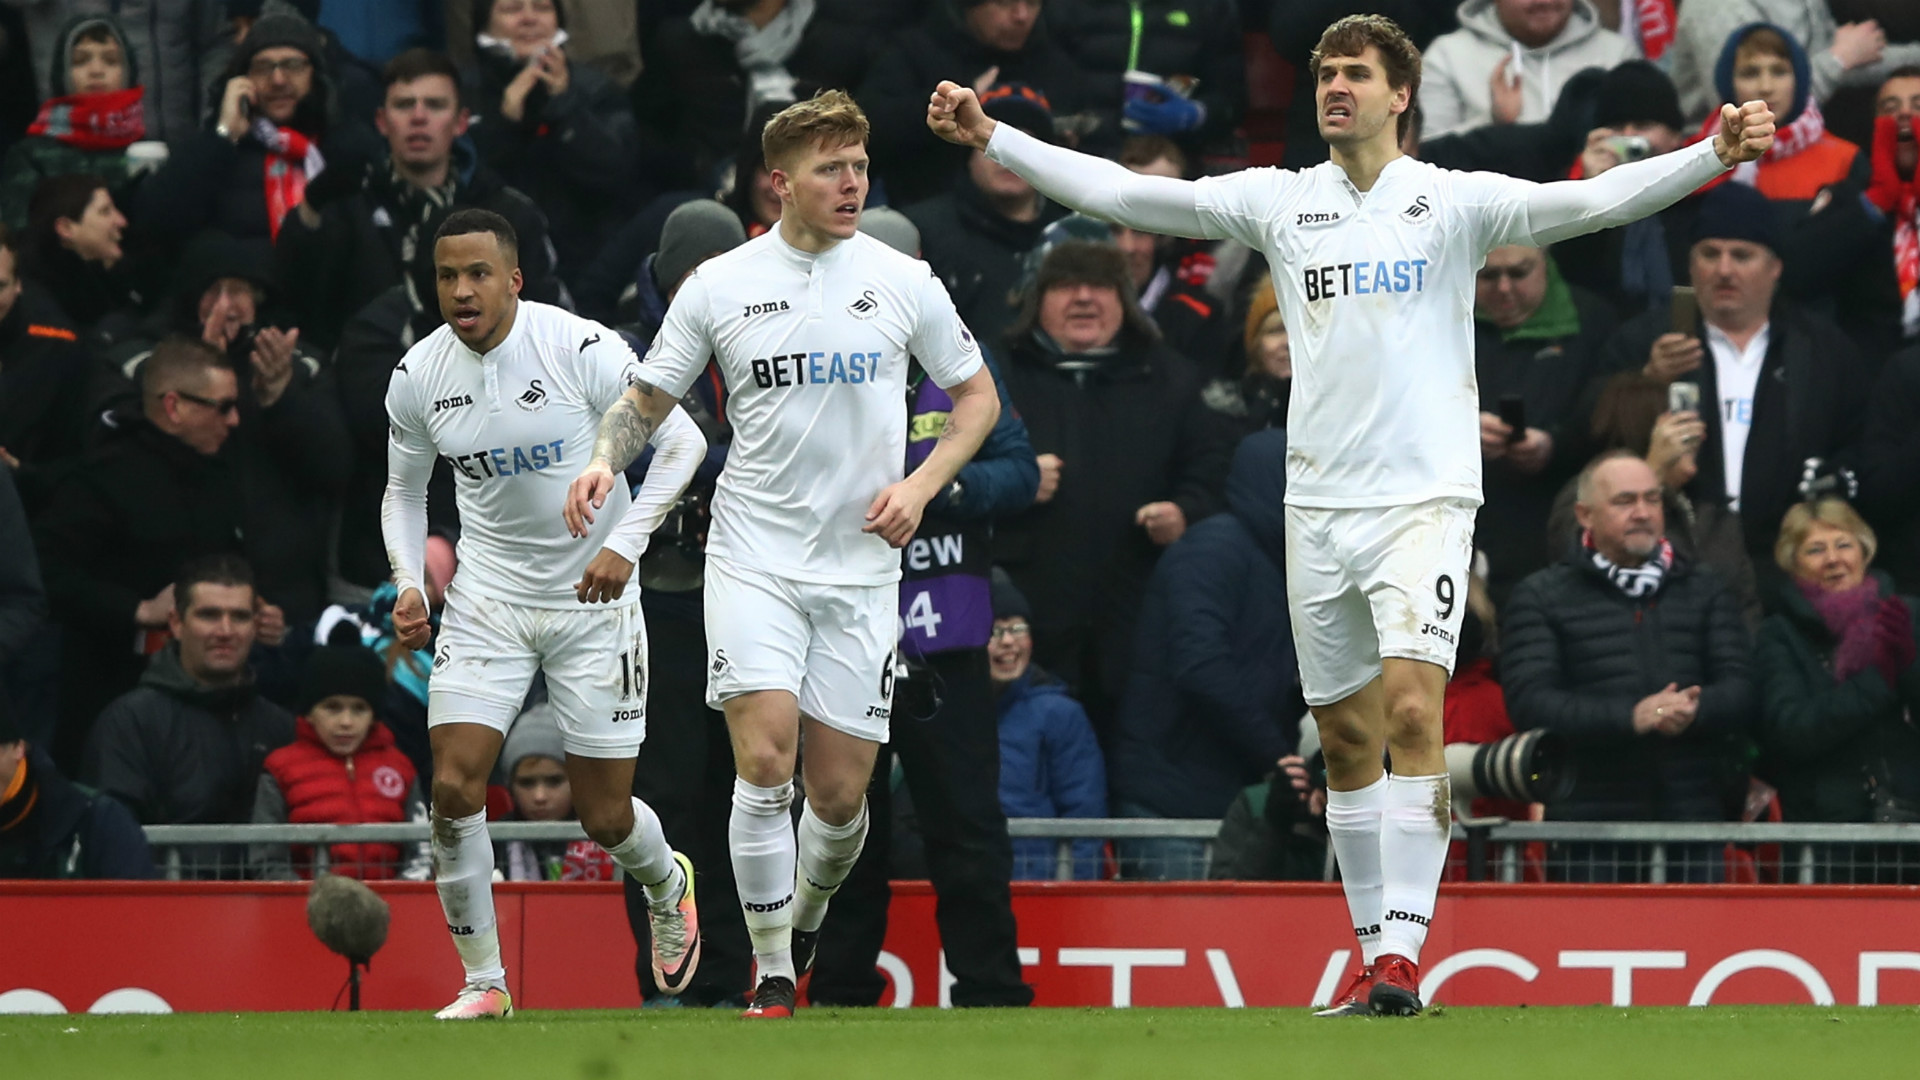 HD Swansea celebrate v LFC